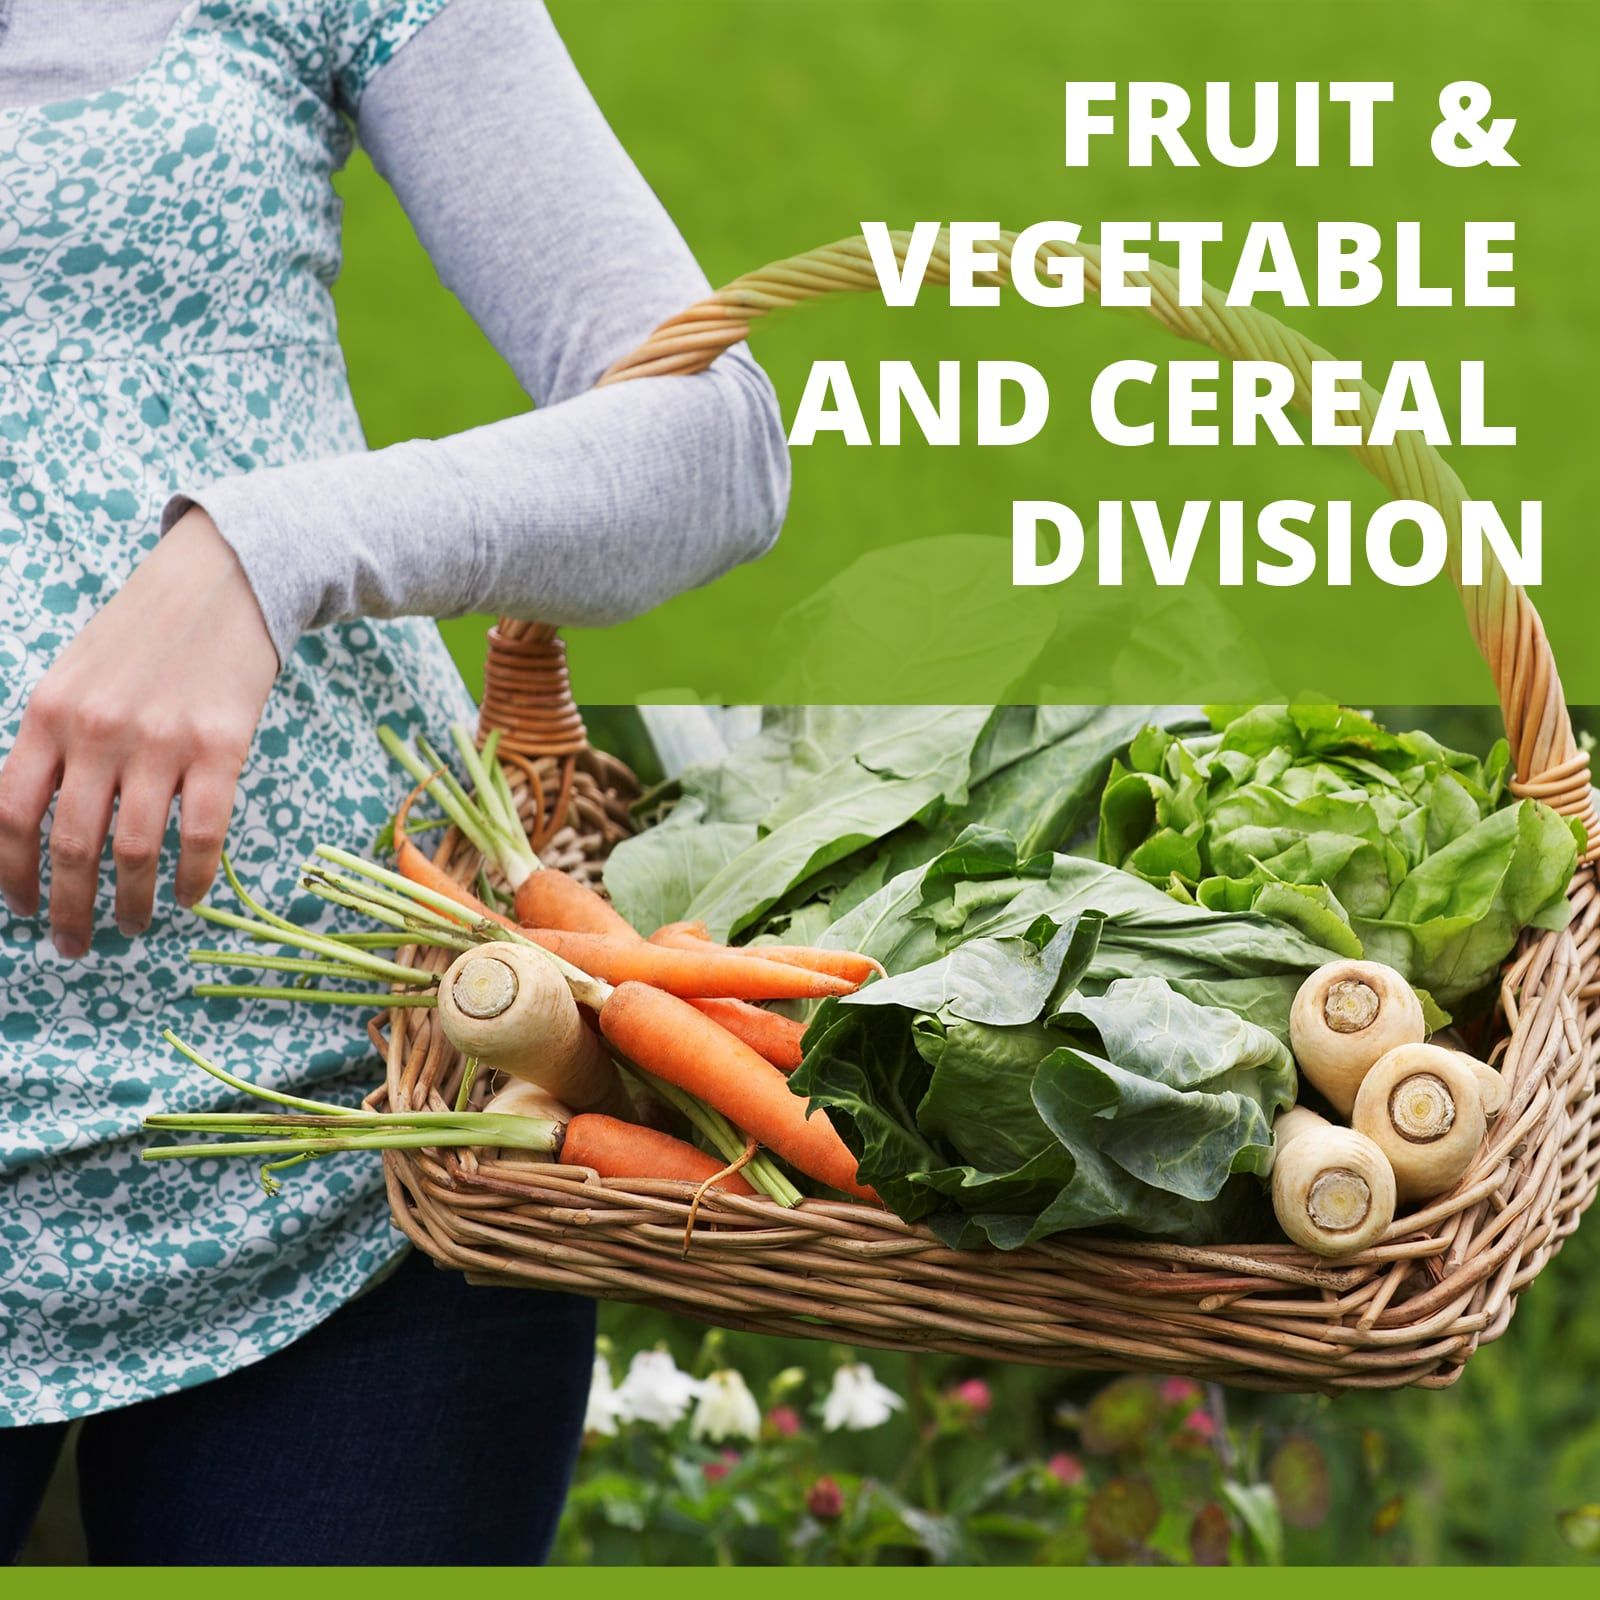 FRUIT, VEGETABLE and CEREAL DIVISION